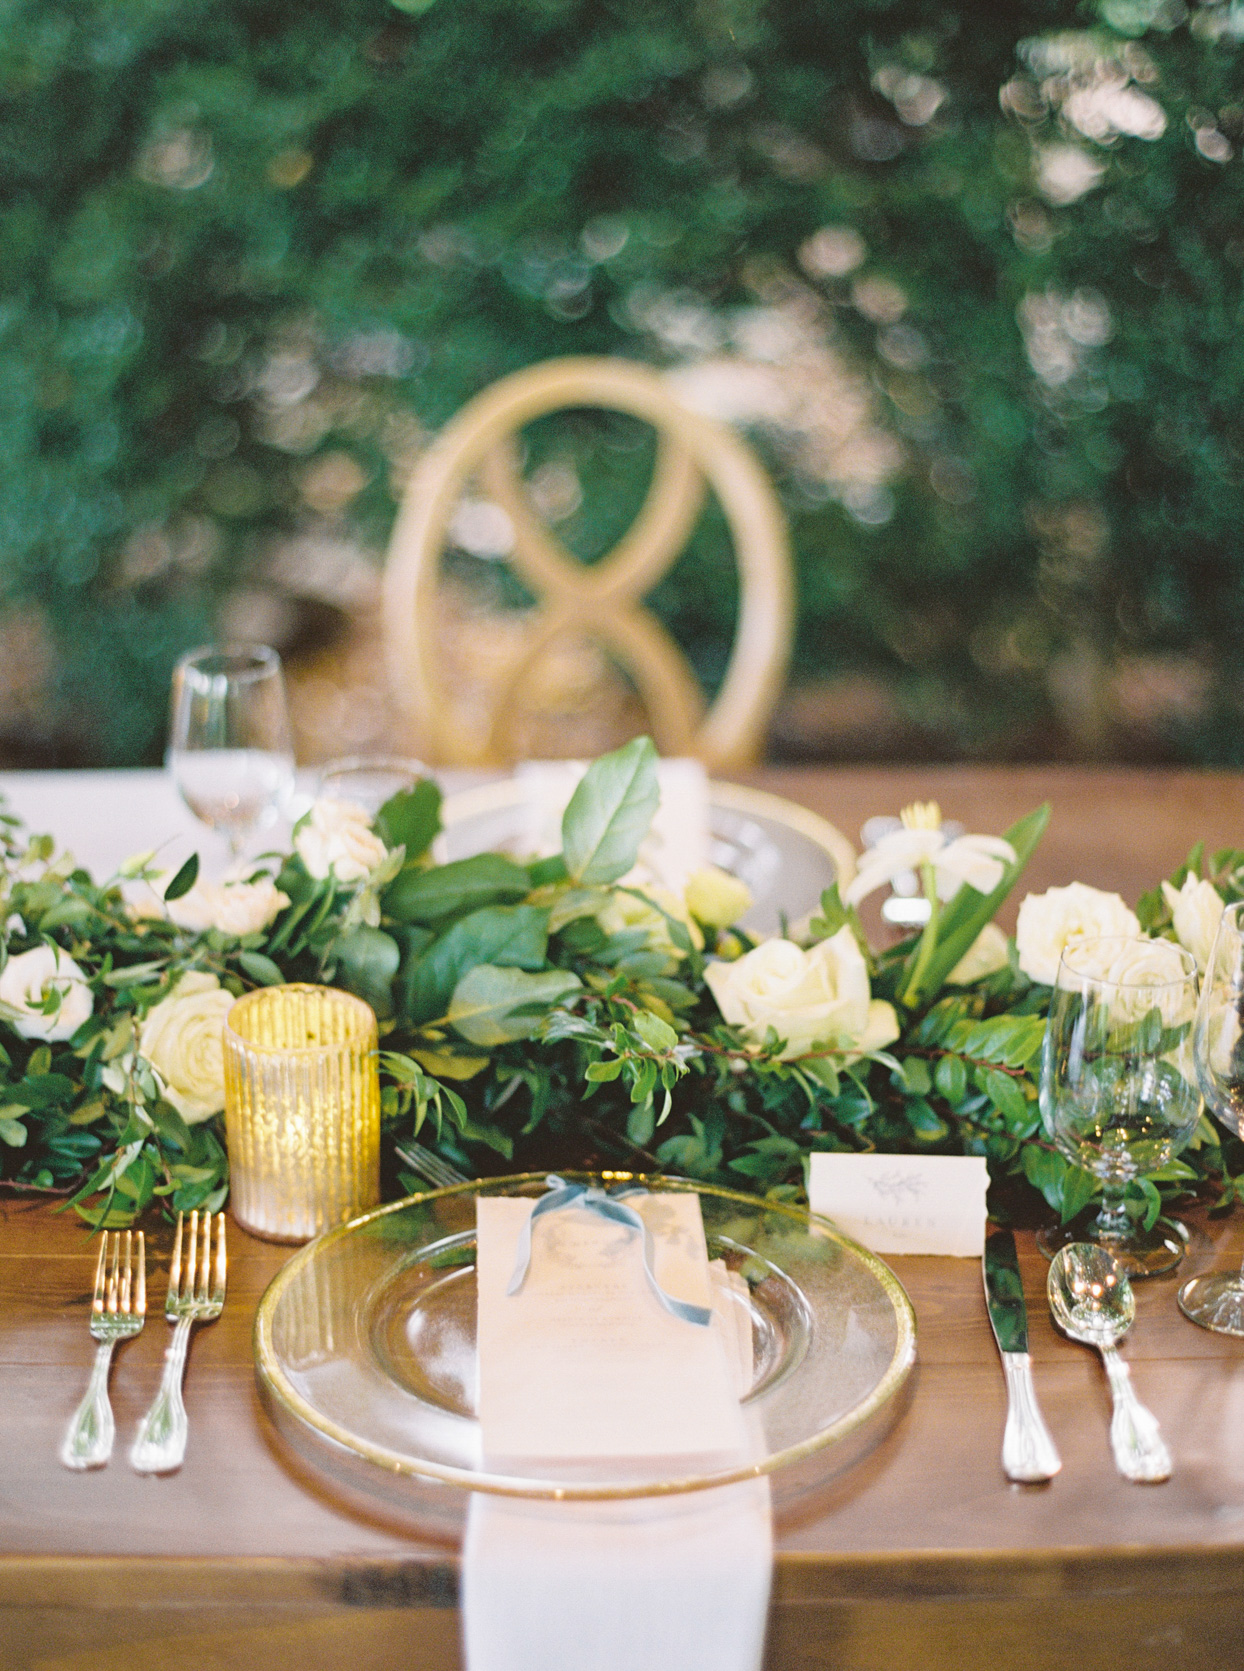 elegant wedding place setting on wooden table with greenery garland